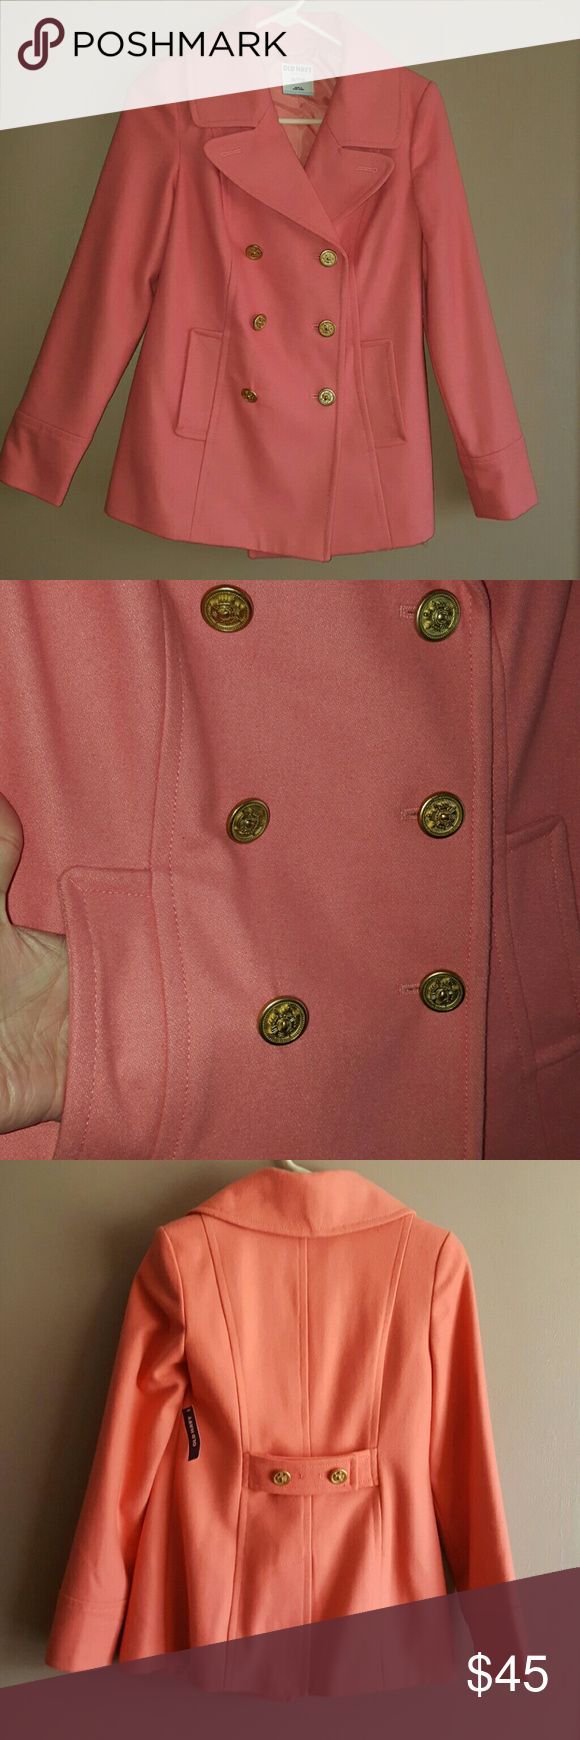 Old Navy coral pea coat (XS) New with tags. Old Navy pea coat, size XS, color is a gorgeous coral hue. Functional pockets. Bronze colored buttons on the front for closure & two decorative ones on the back. Sleeves : 23.5 inches / Bust : 25 inches buttoned / Length : from the shoulder - 24 inches. Old Navy Jackets & Coats Pea Coats